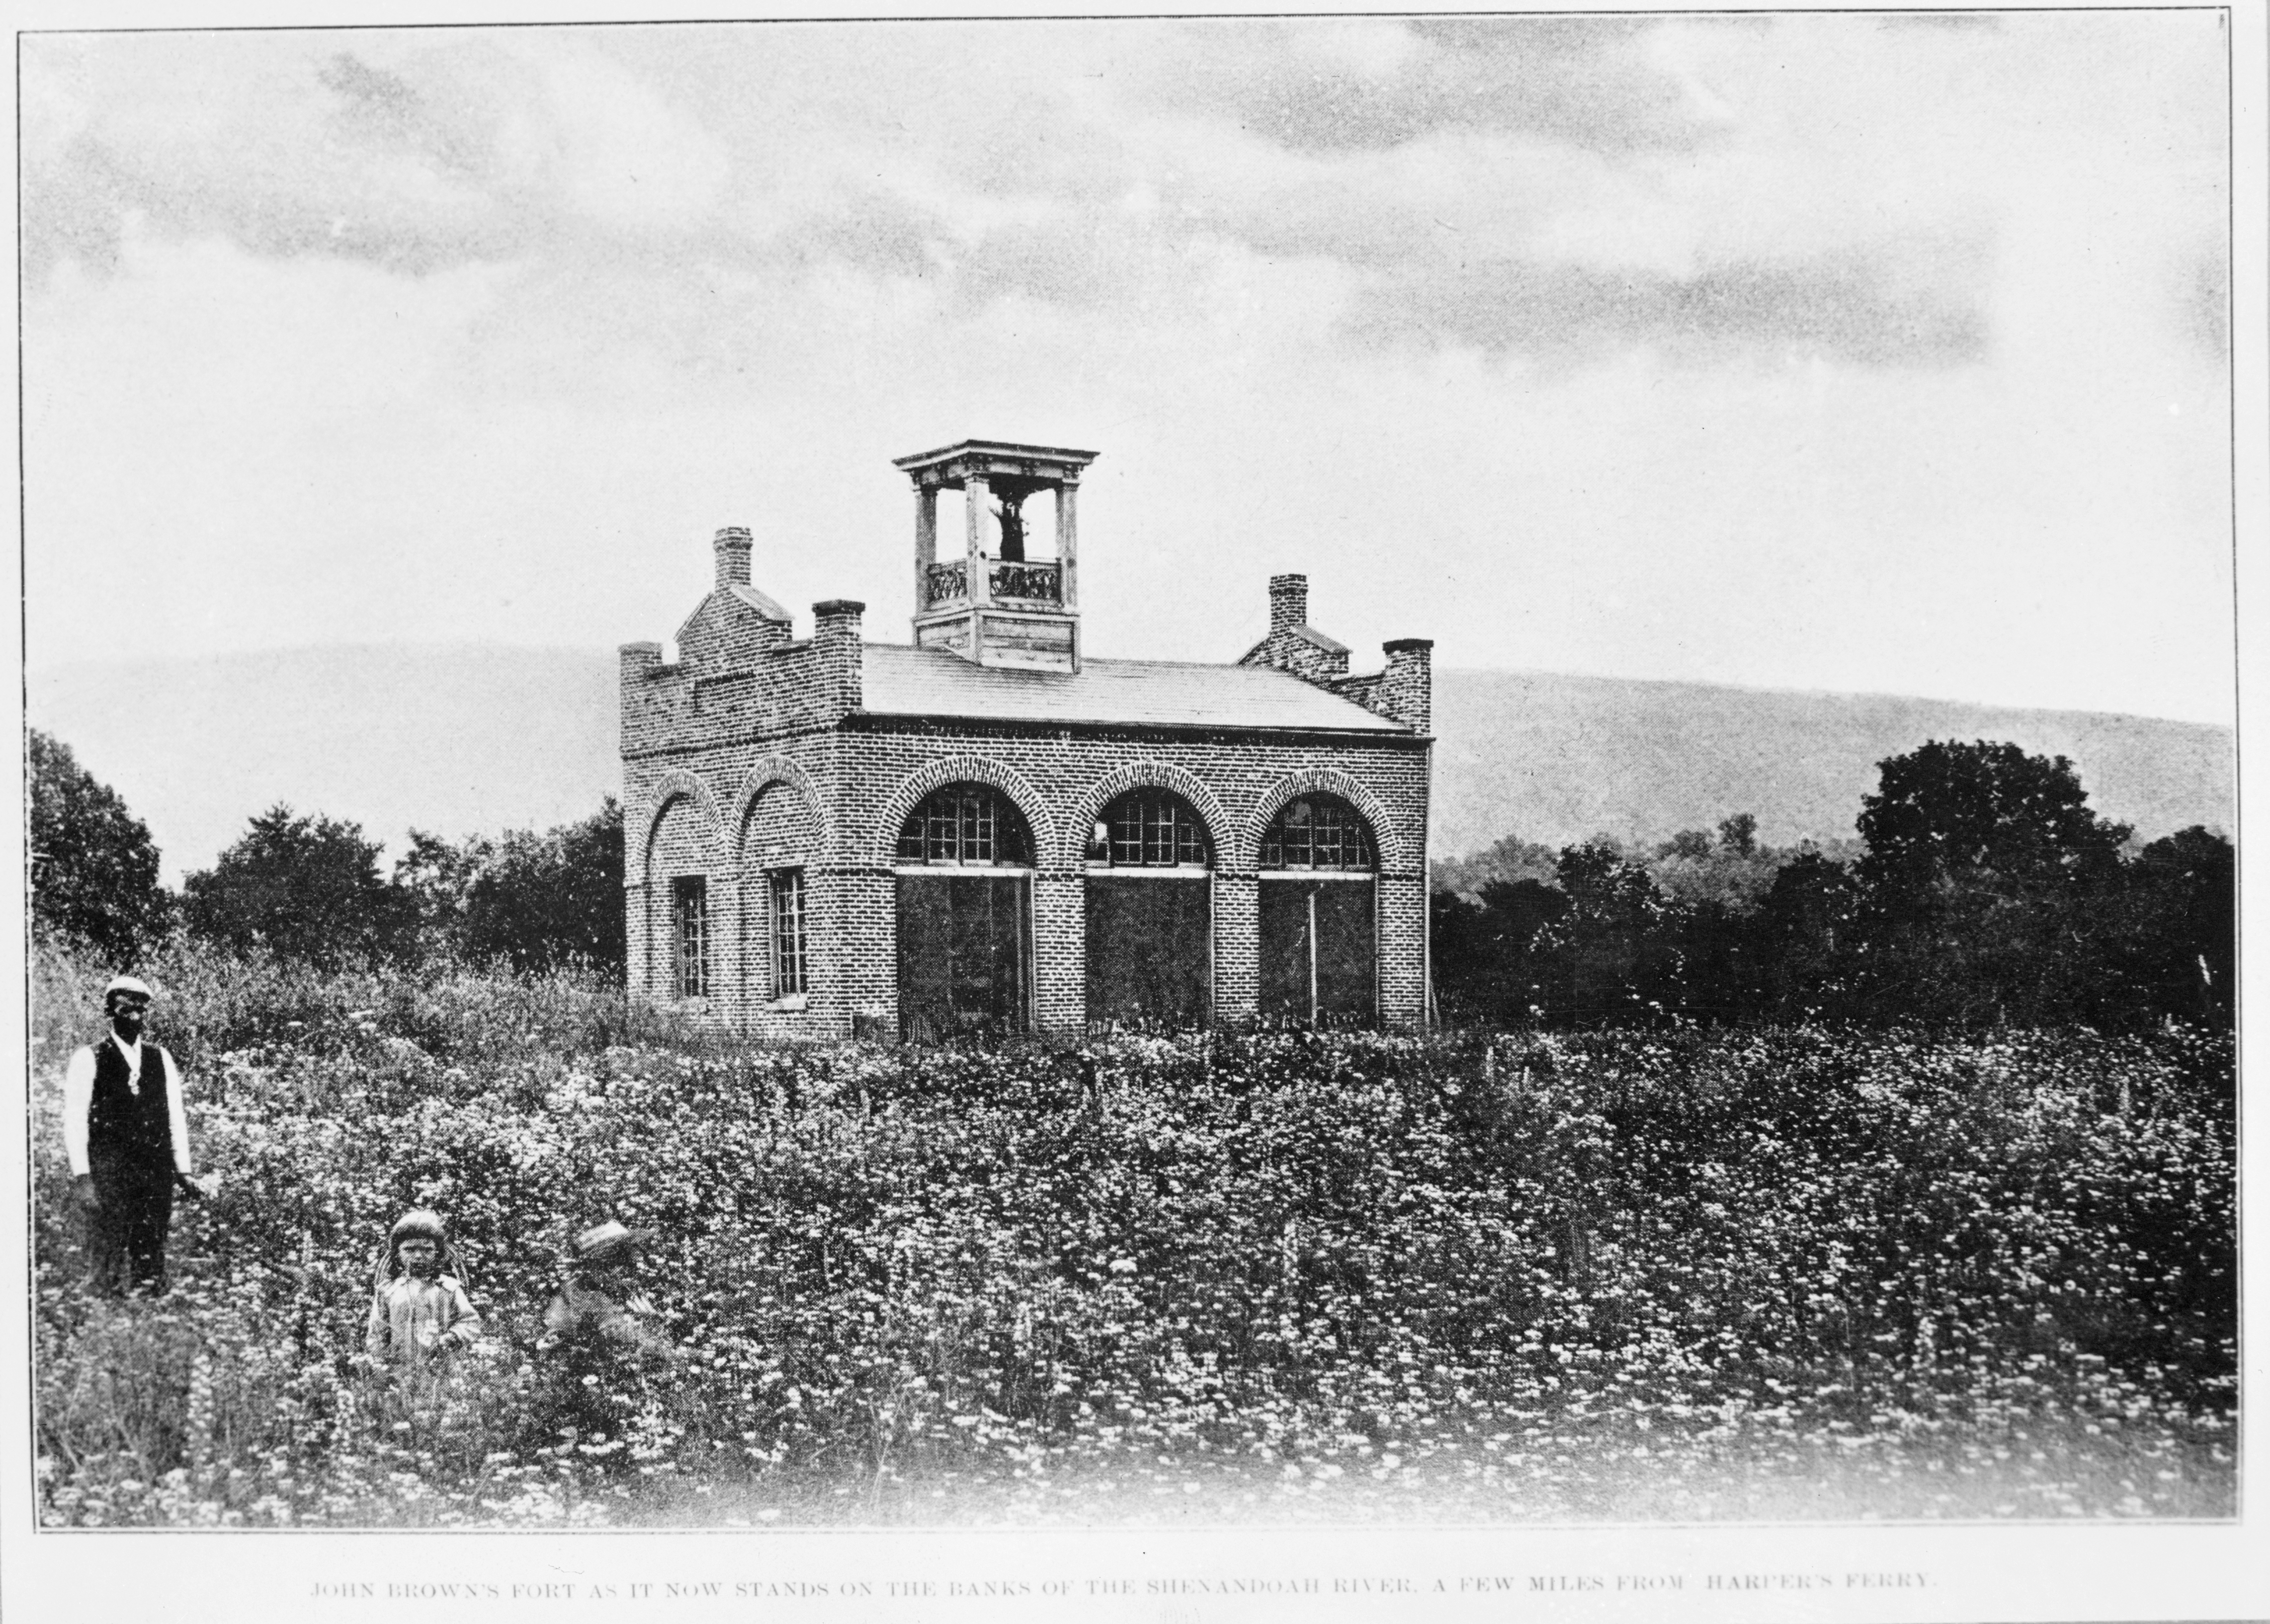 From 1895 to 1909 John Brown's Fort sat on a field at  the Murphy Farm. Image obtained from the National Park Service.